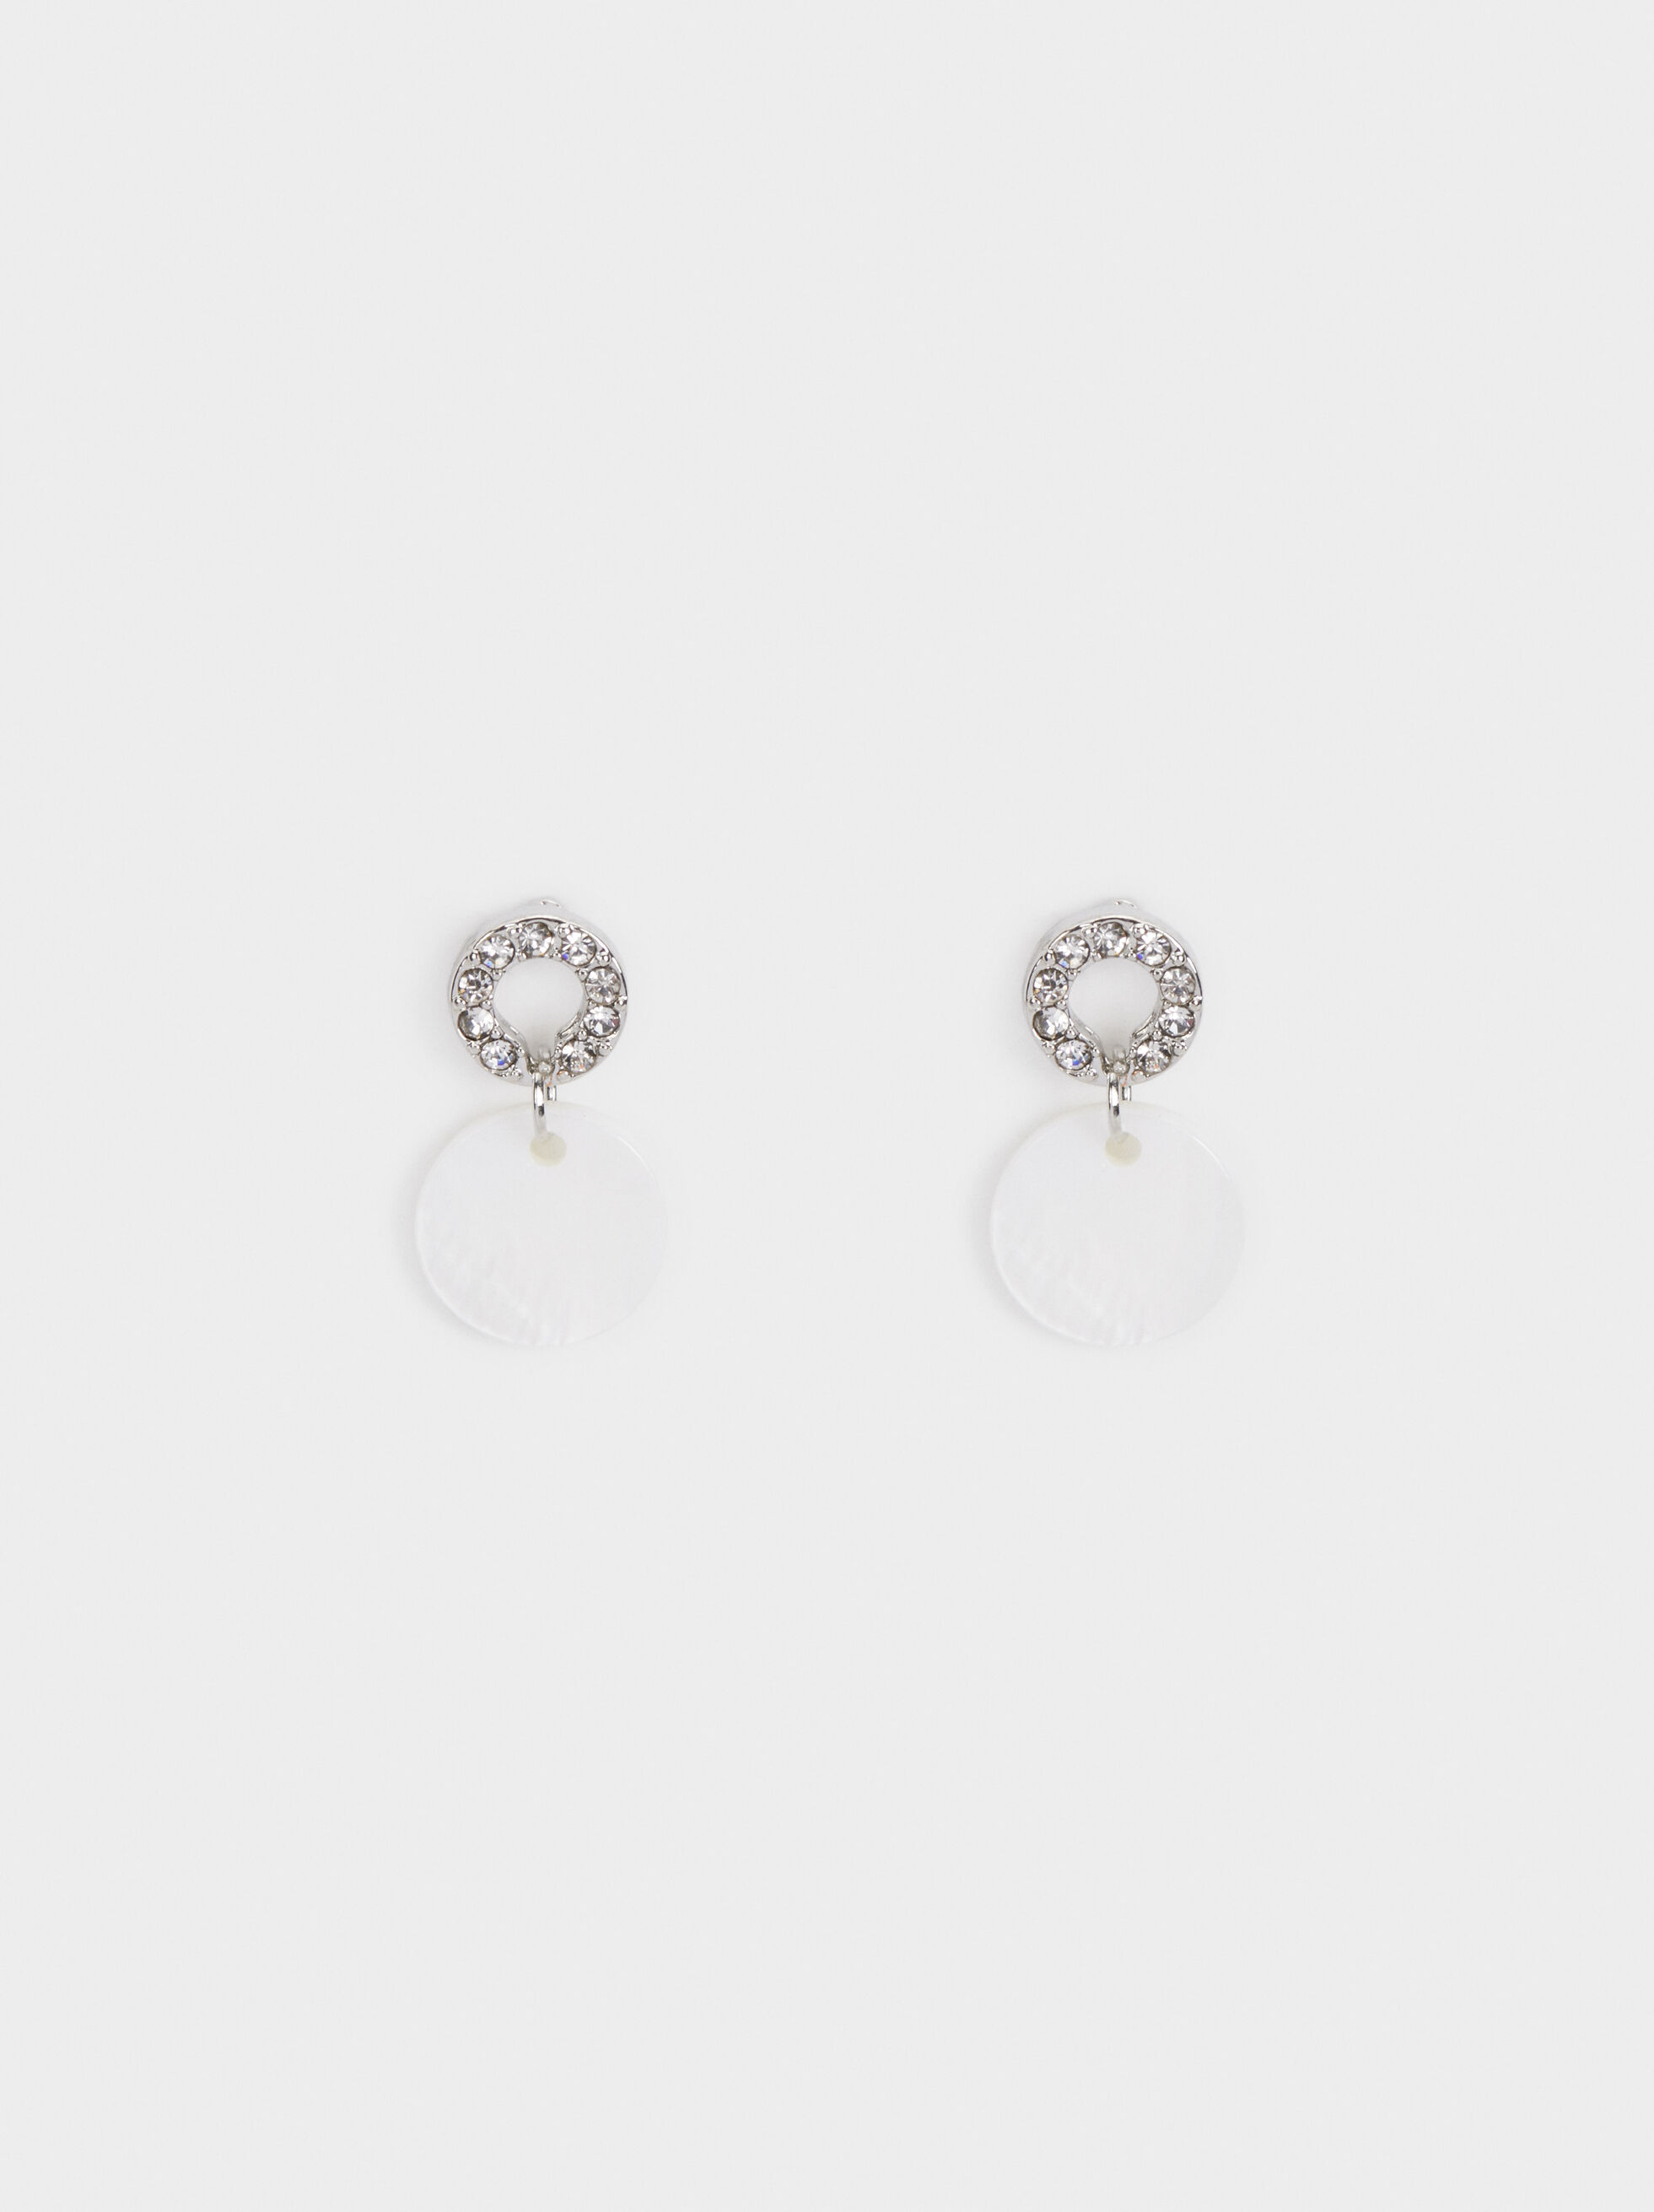 Medium Circle Earrings With Rhinestones, Silver, hi-res